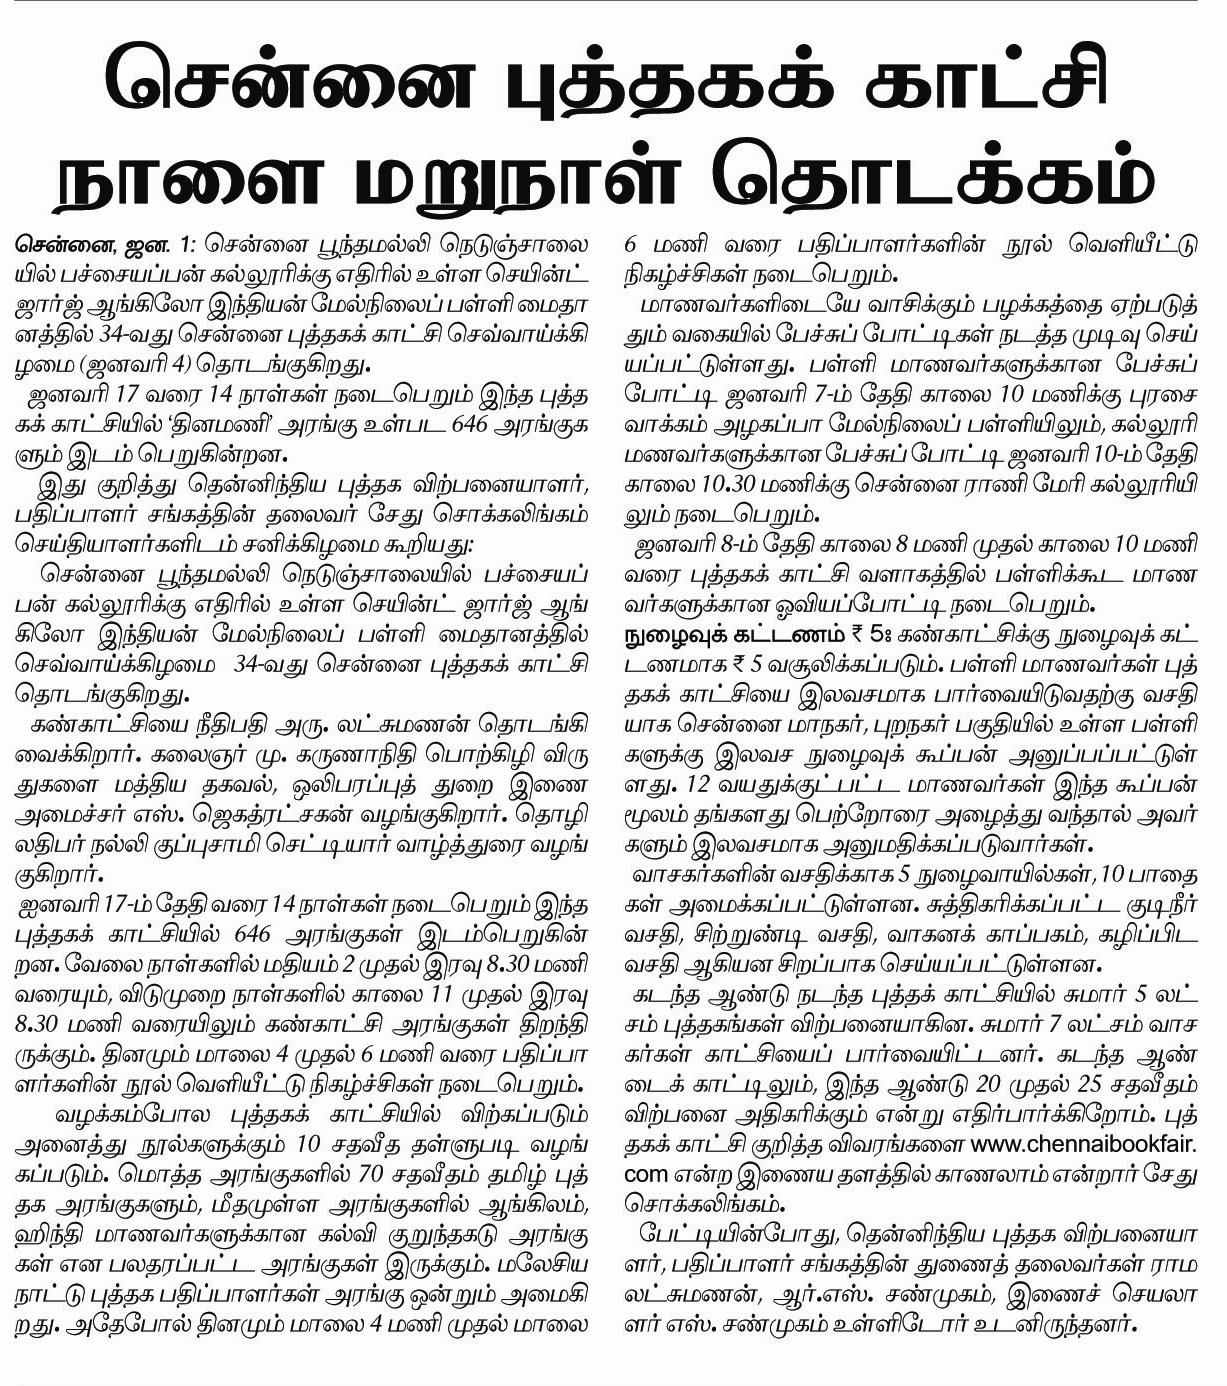 BookFair Dinamani 2-1-2011 news